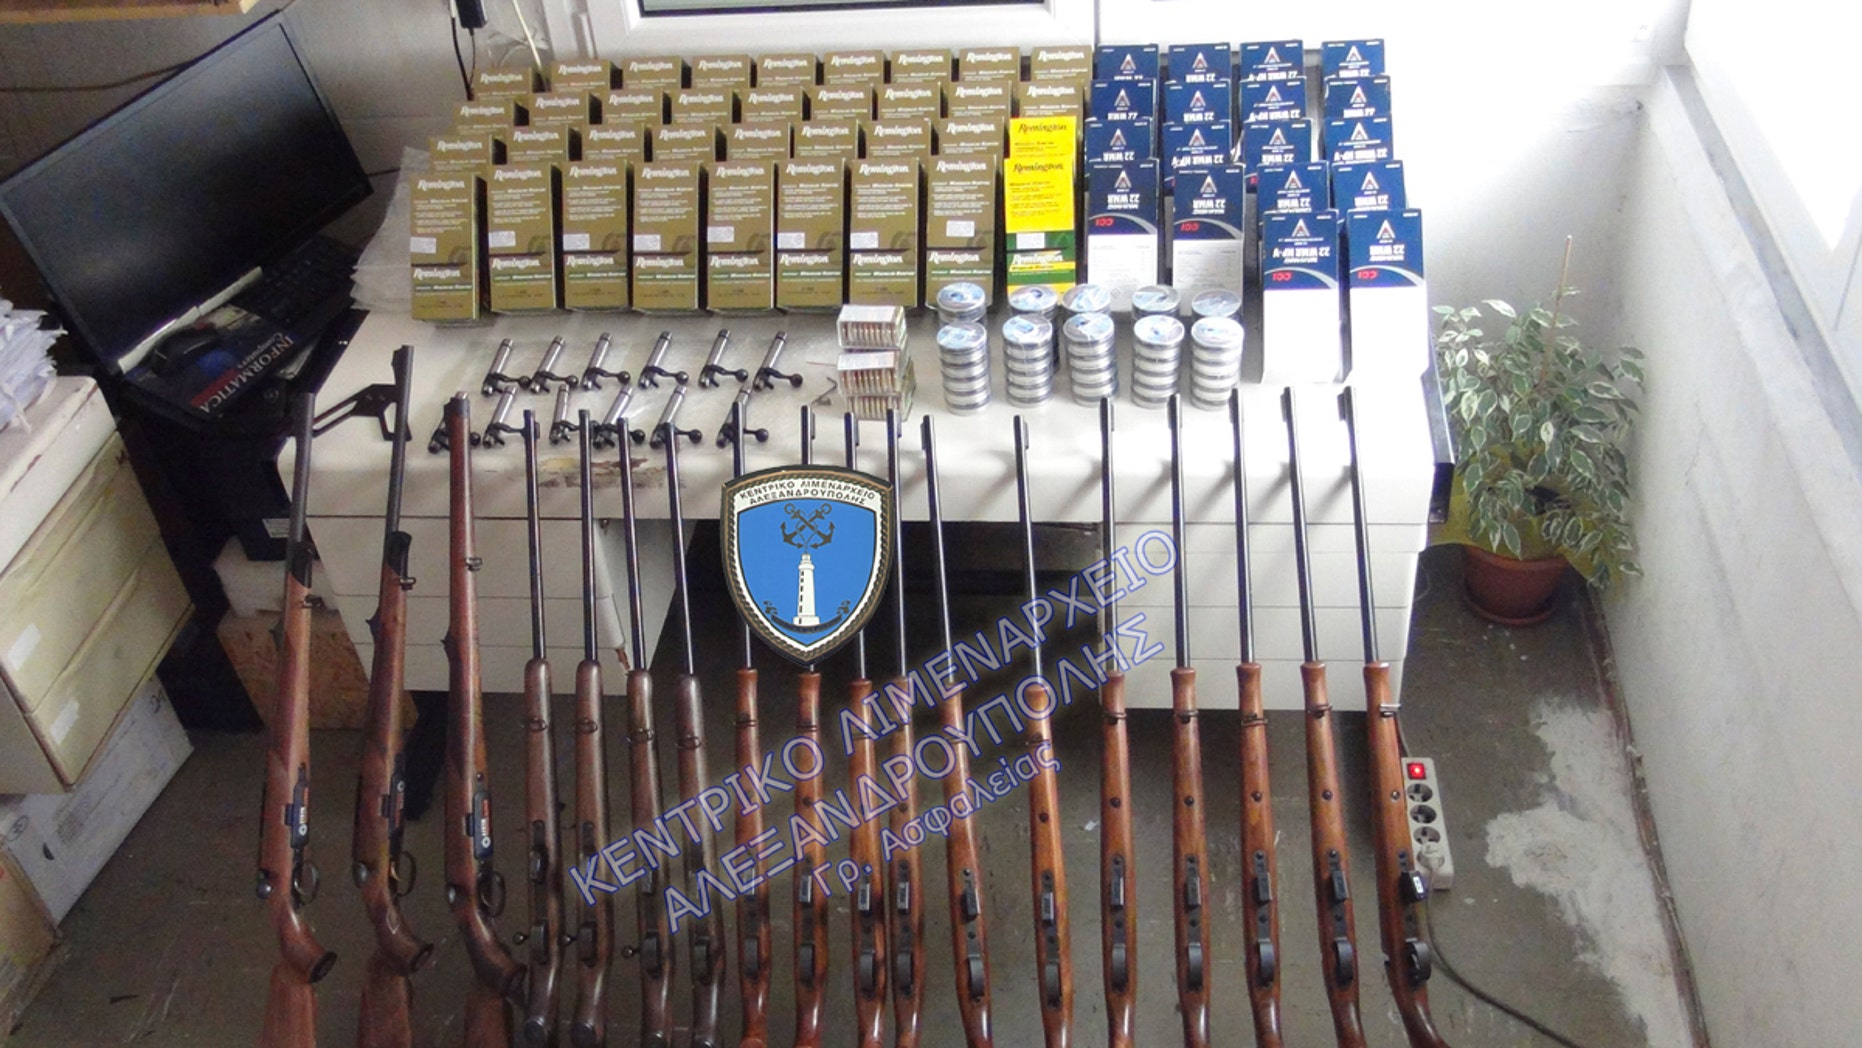 This undated photo shows rifles and bullets confiscated after the arrest of two British citizens in Alexandroupolis. Following this arrest, Greek police say they arrested another man carrying four air rifles, eight scopes and 200,000 bullets.